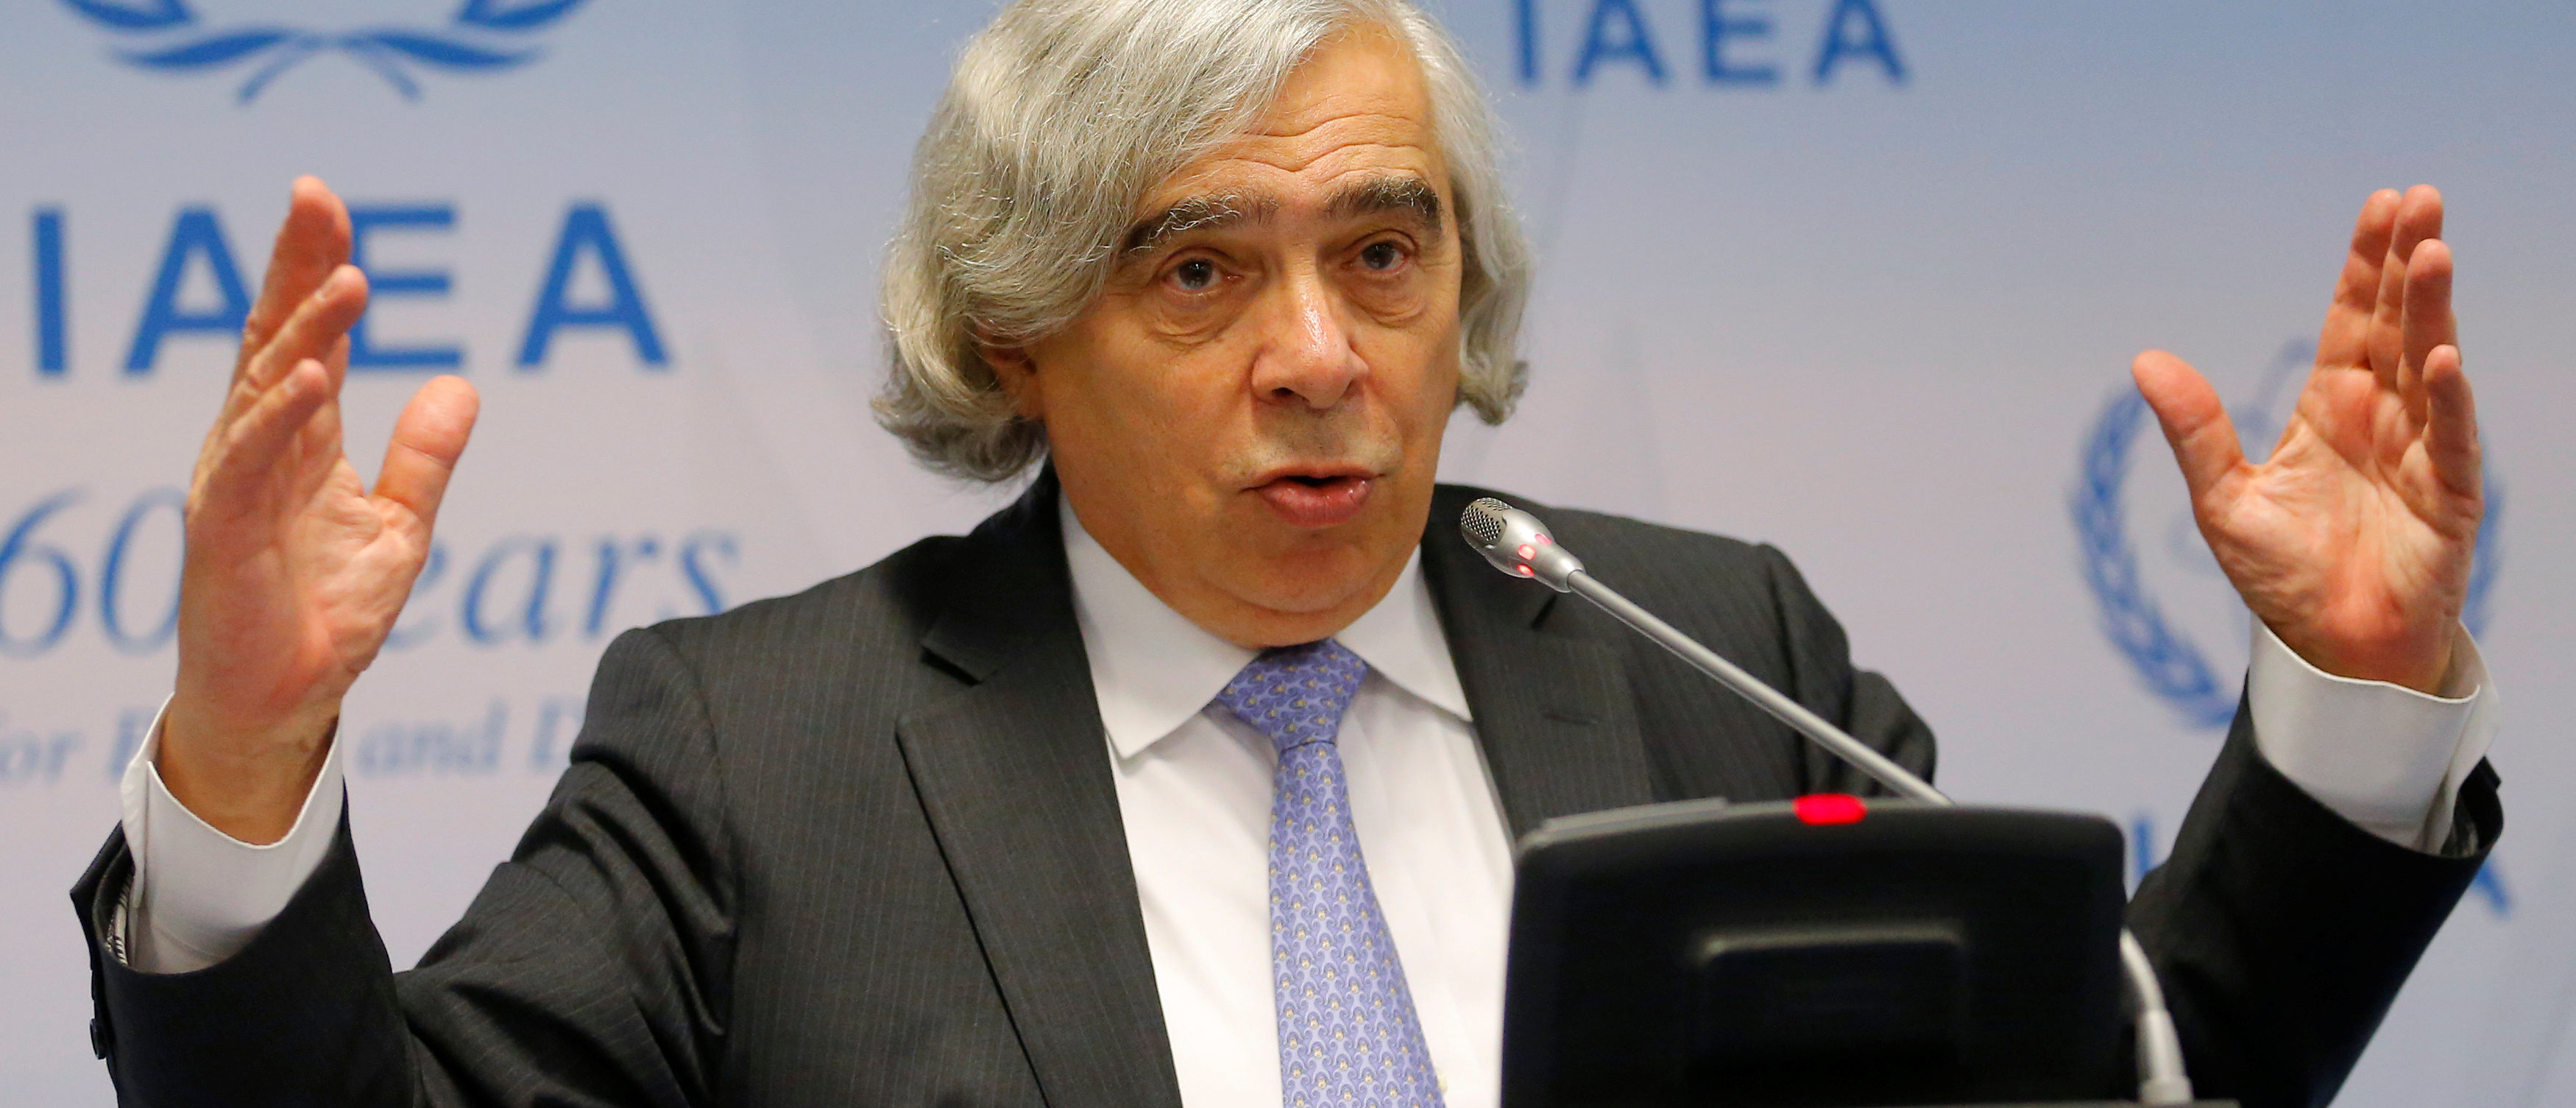 U.S. Secretary of Energy Ernest Moniz addresses a news conference during the IAEA (International Atomic Energy Agency) general conference in Vienna, Austria September 26, 2016. REUTERS/Heinz-Peter Bader - S1BEUDNIJOAA